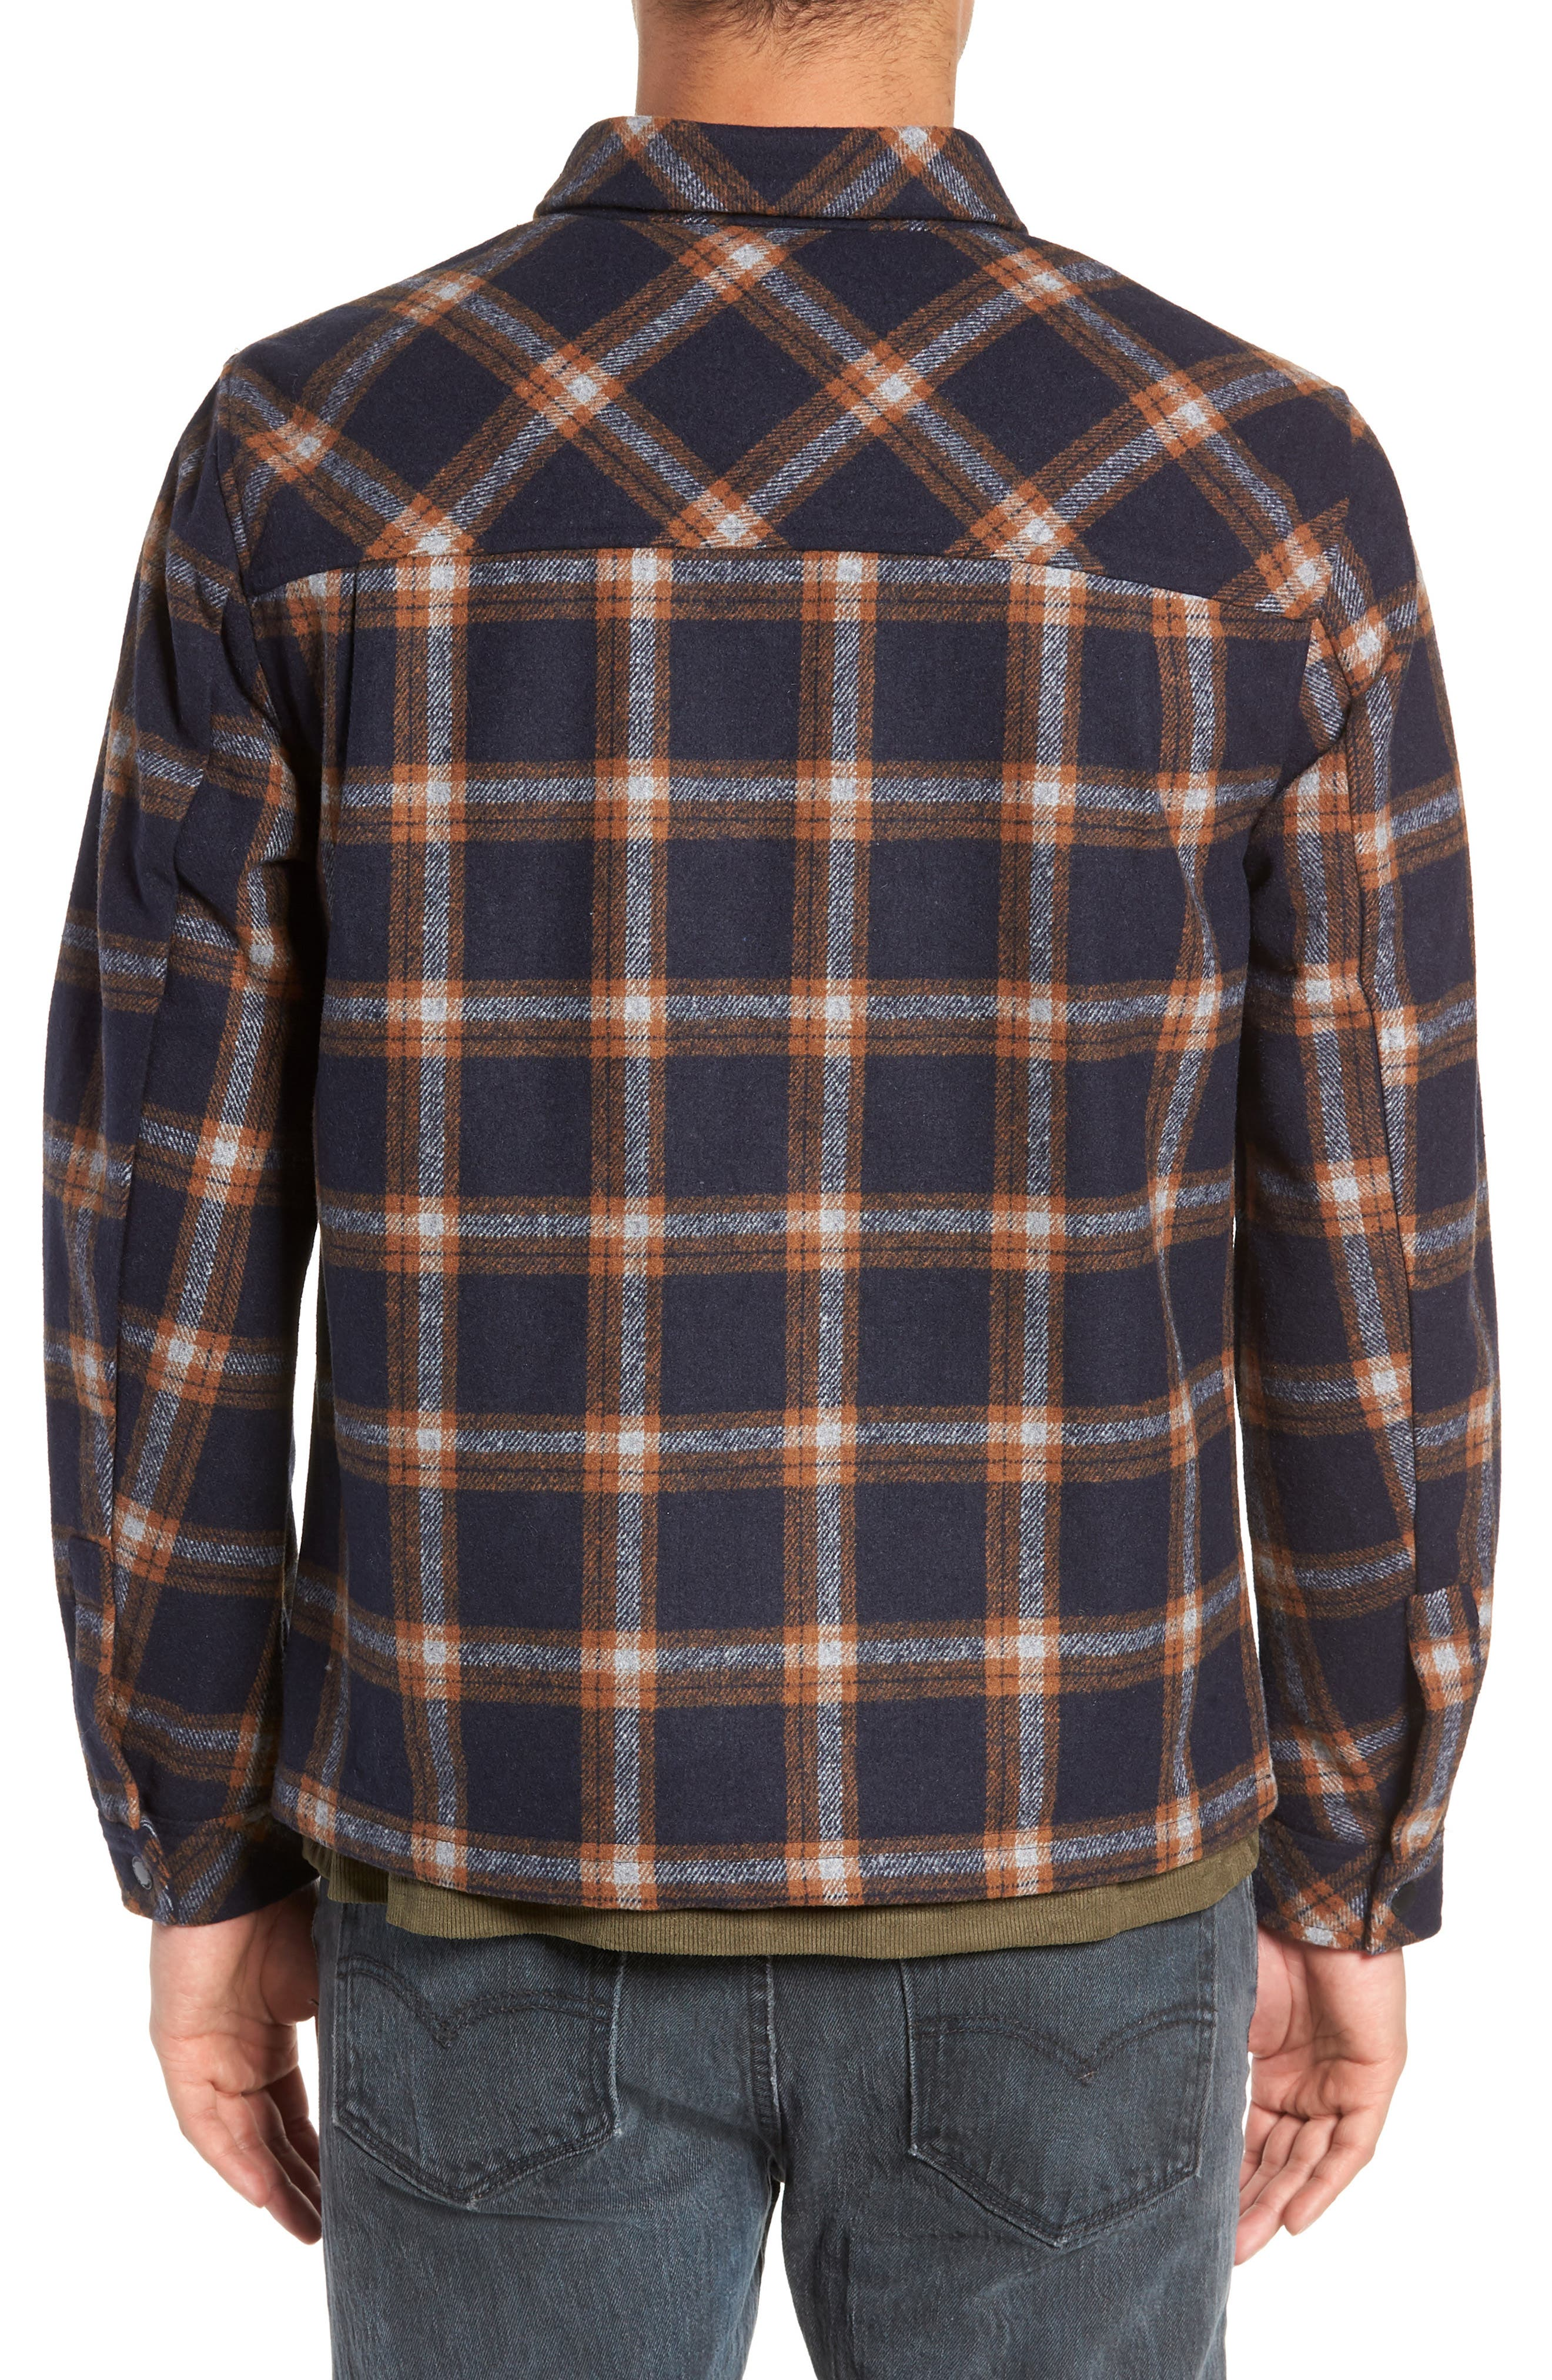 NATIVE YOUTH,                             Check Flannel Shirt,                             Alternate thumbnail 3, color,                             NAVY